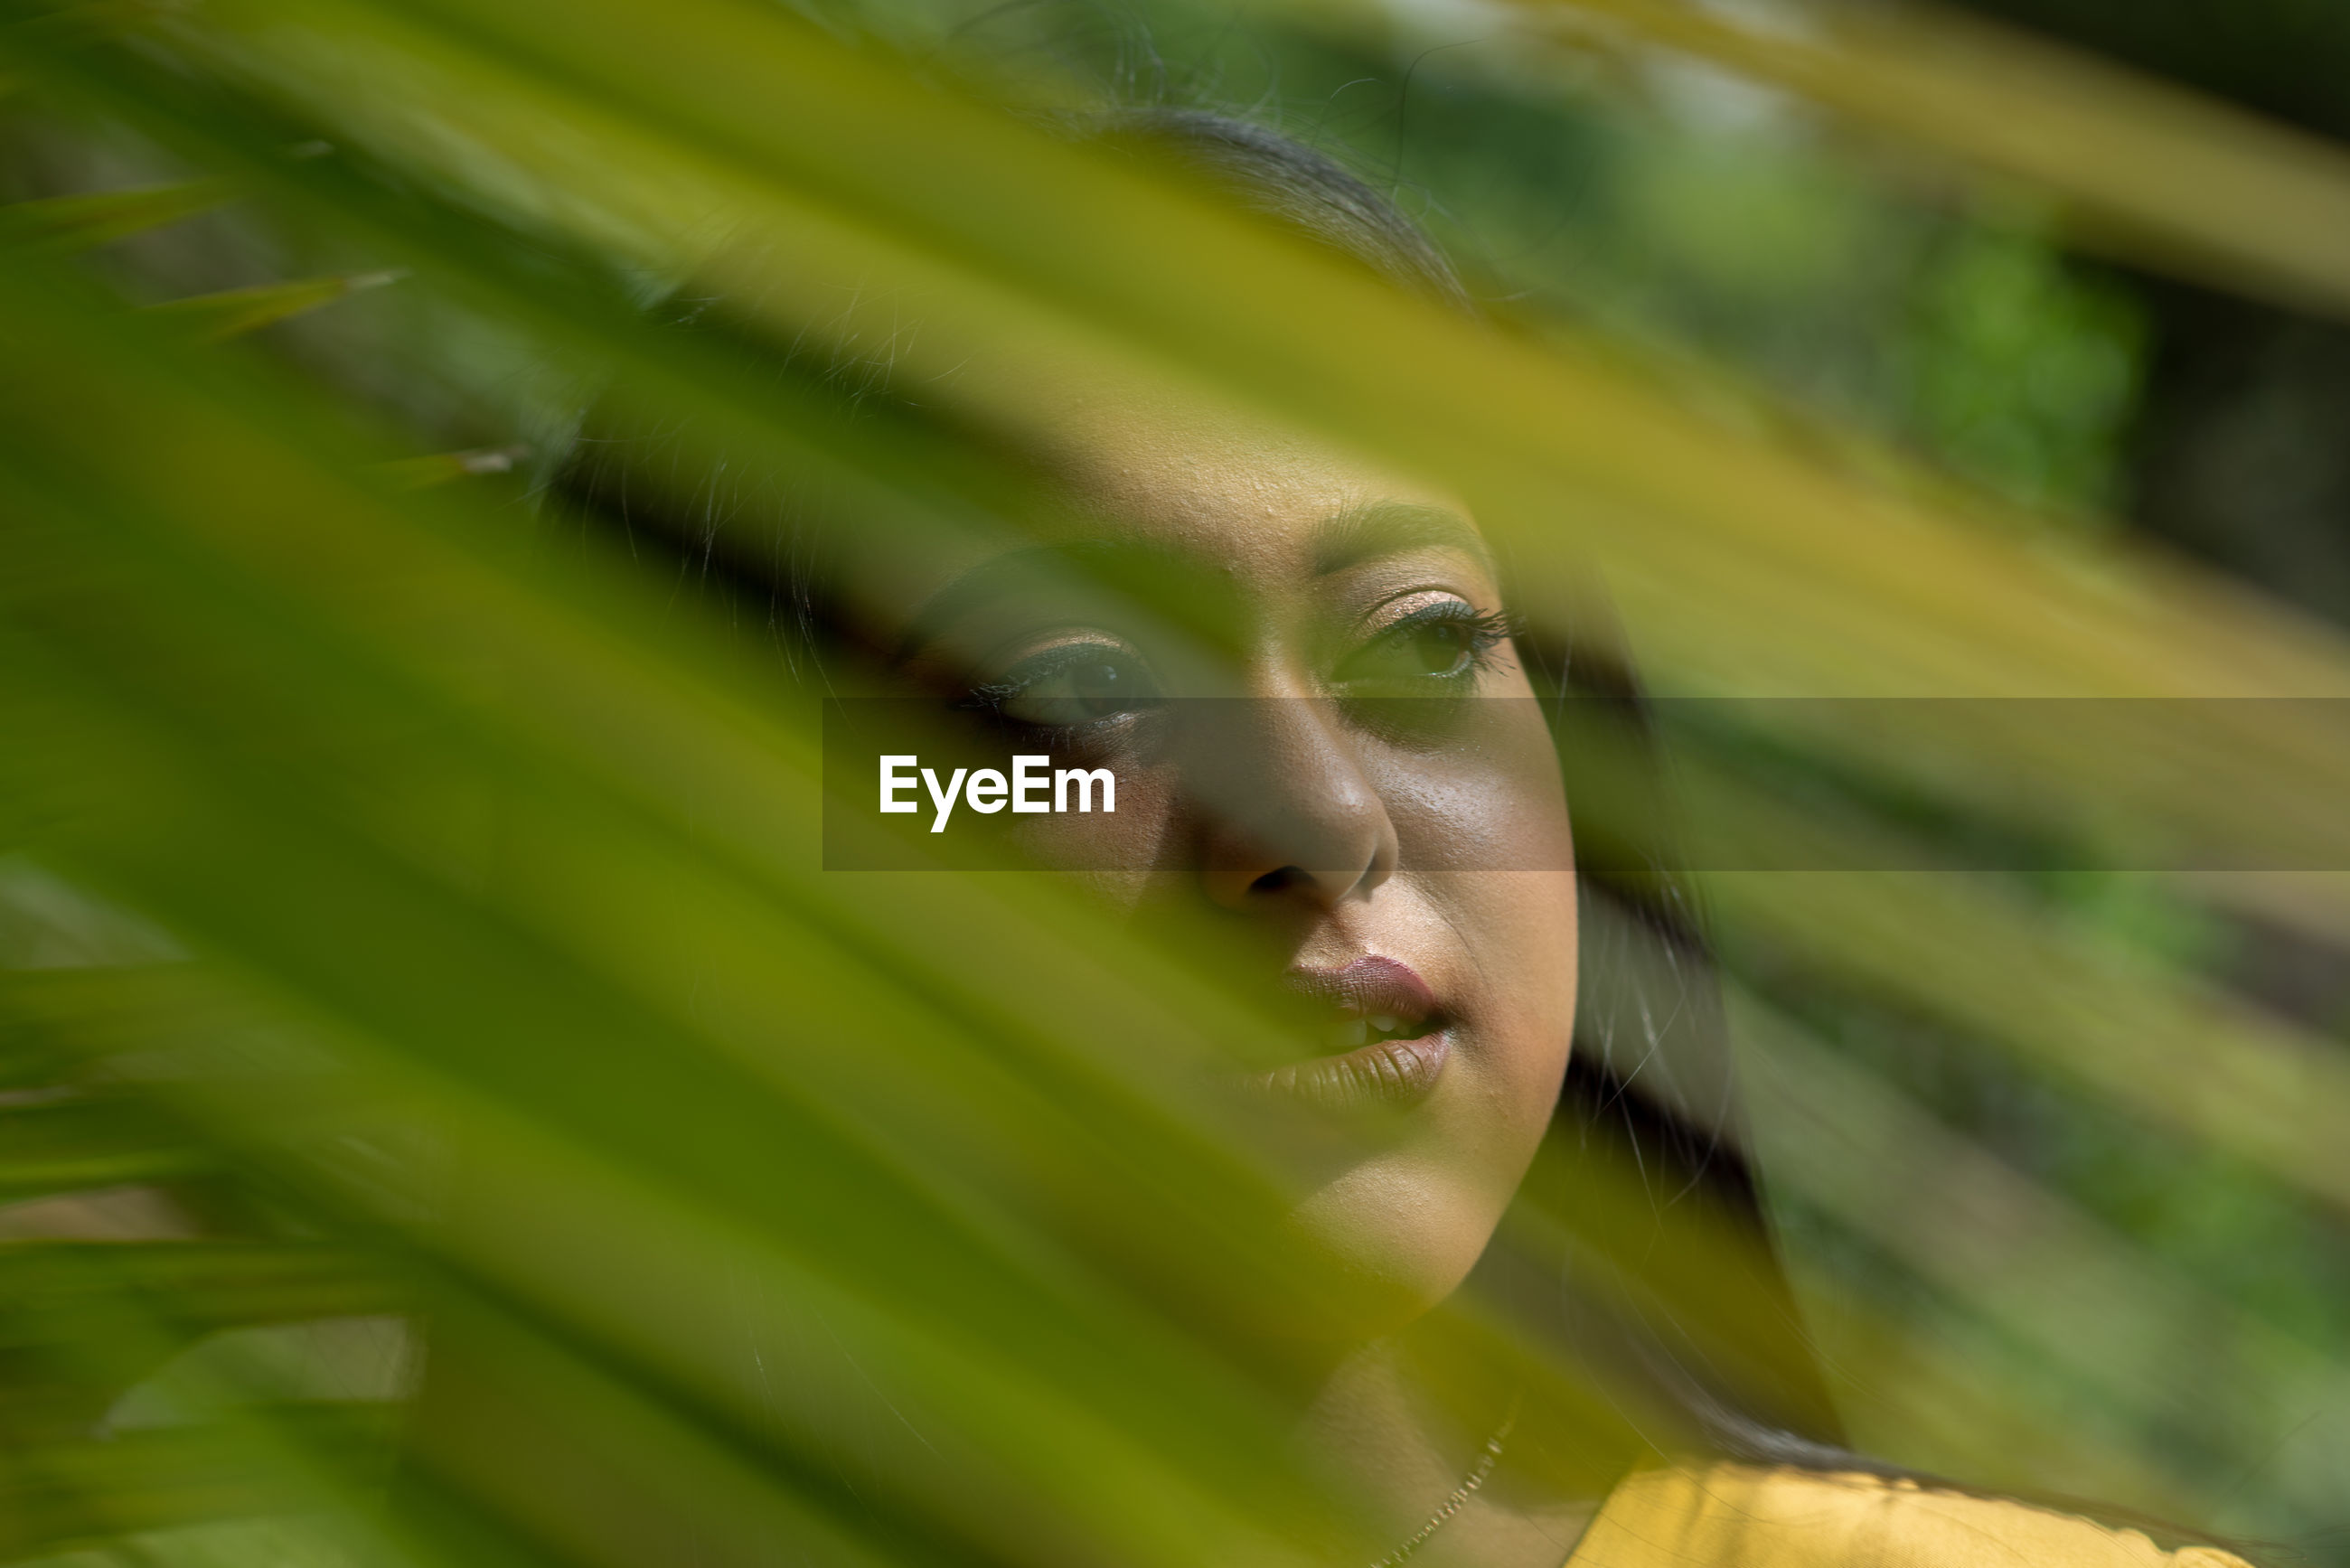 Close-up of young woman looking away seen through green leaves